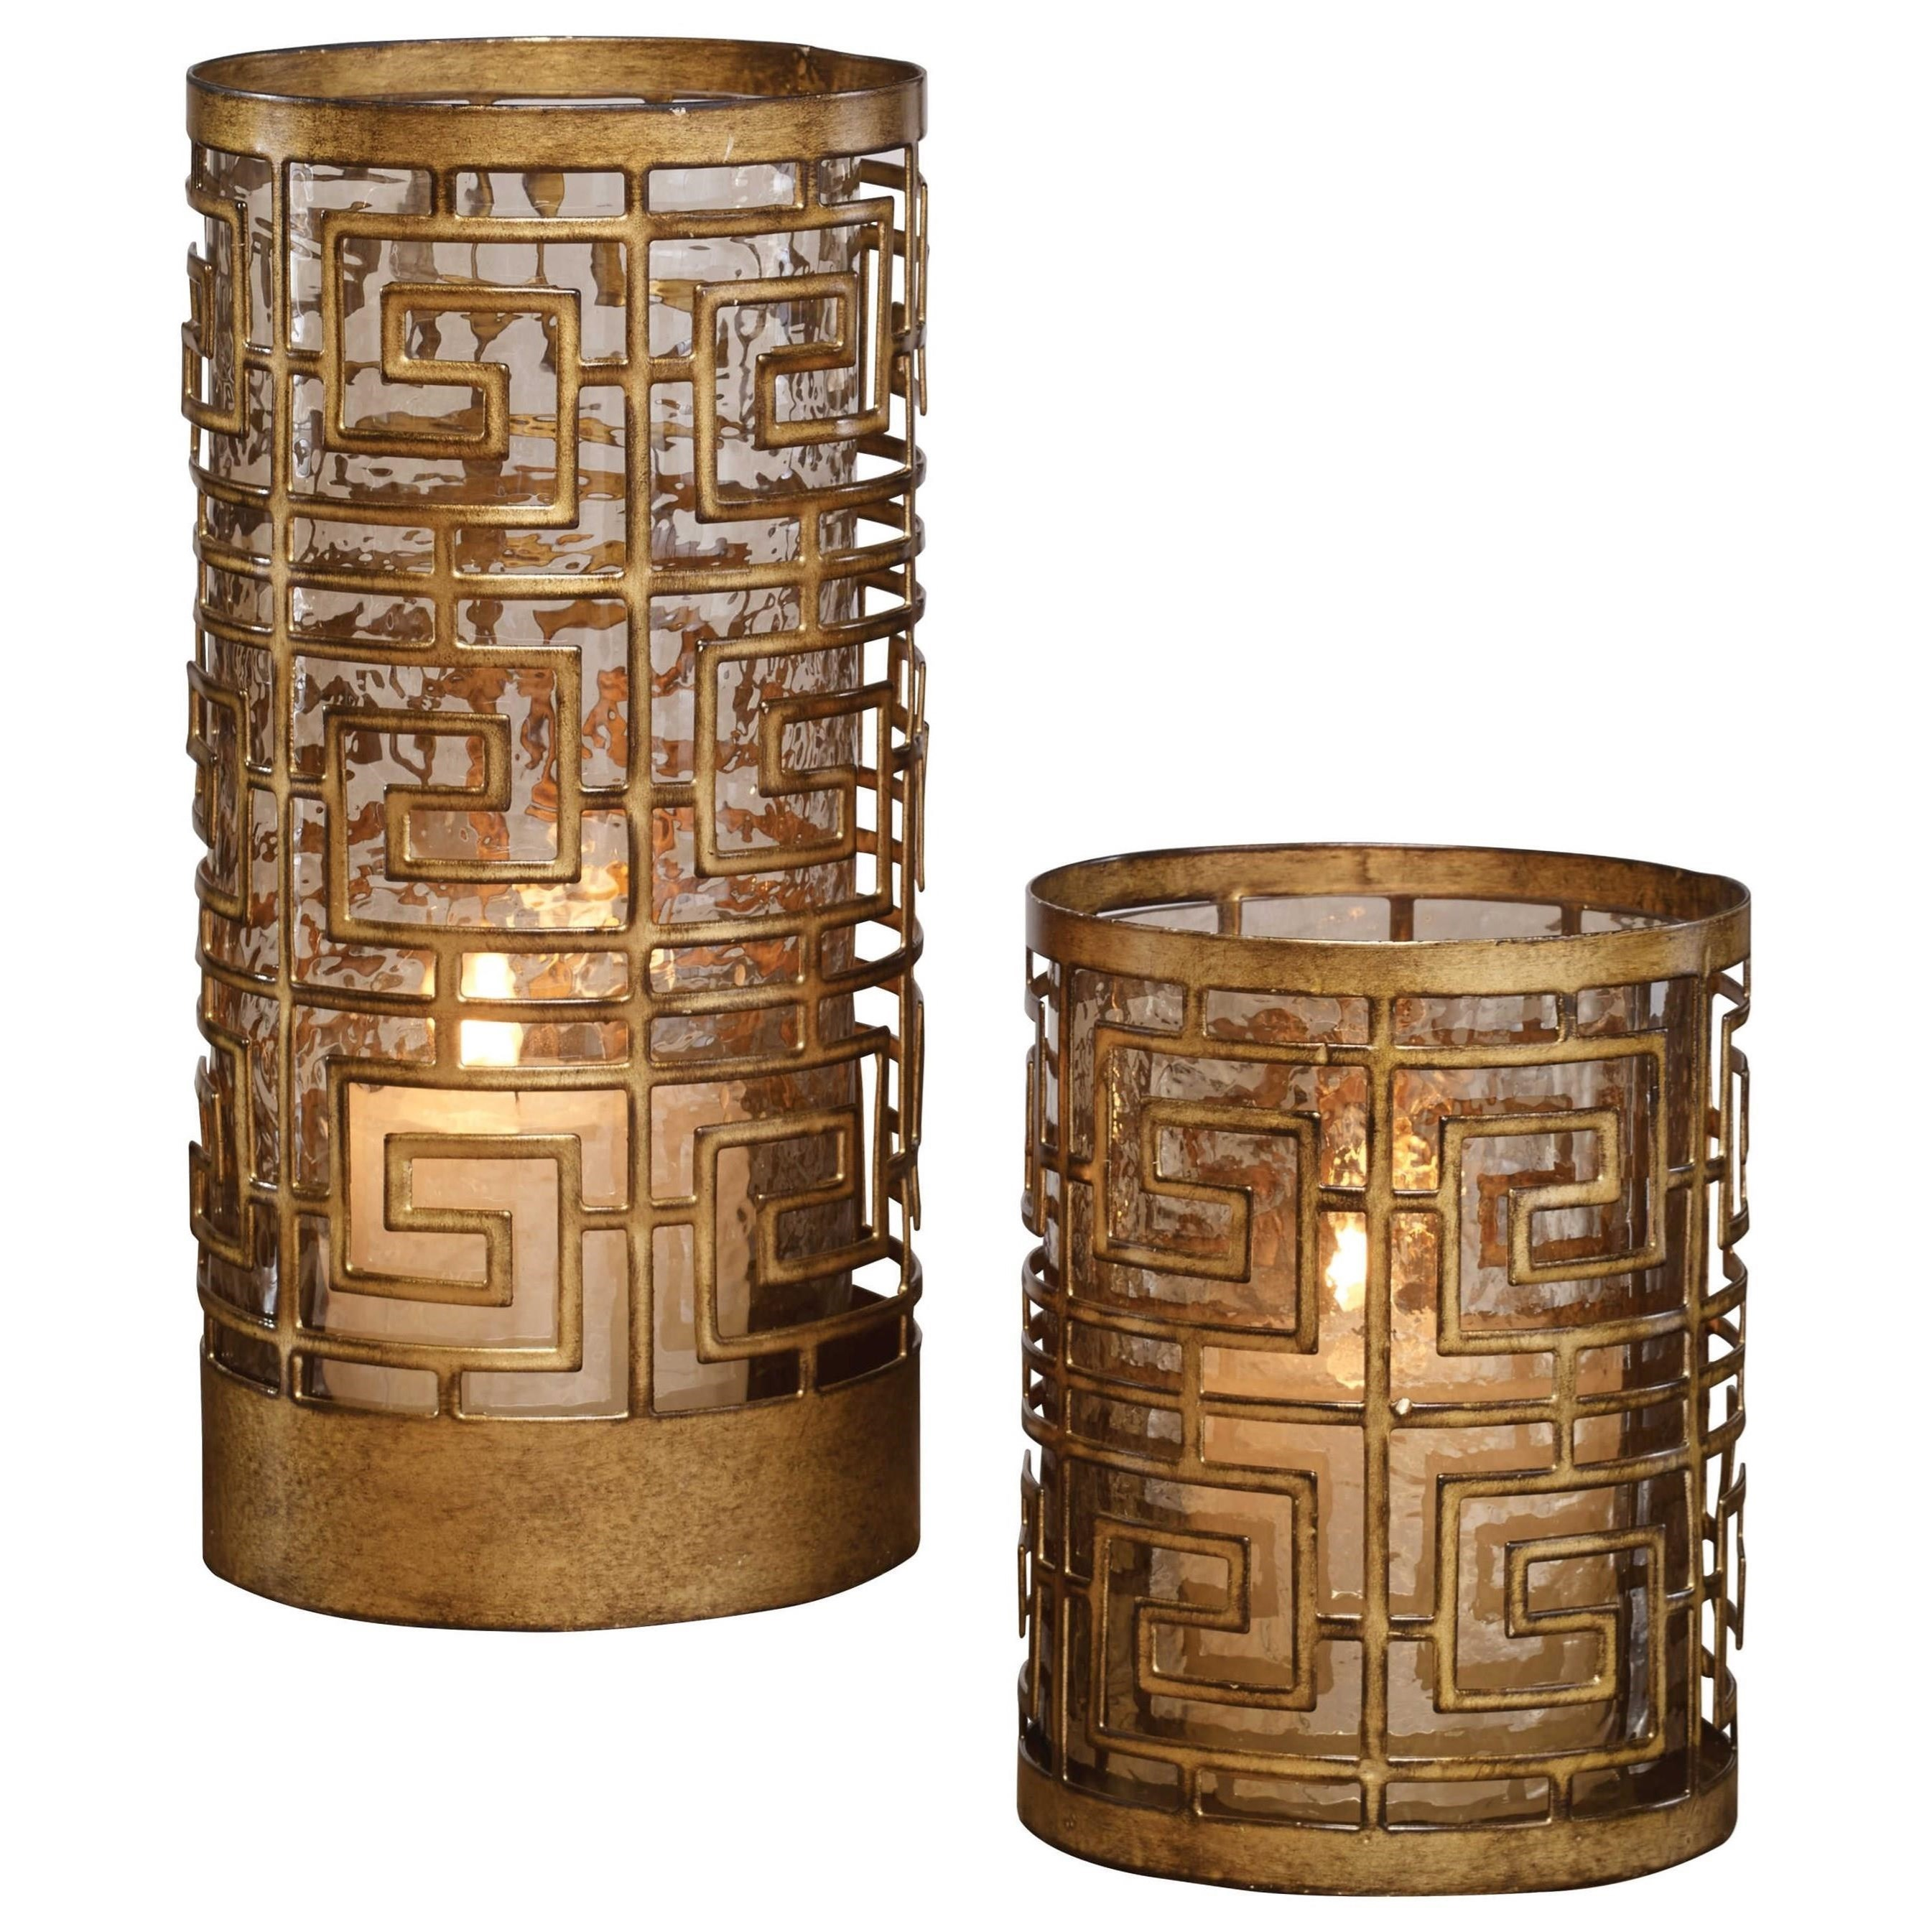 Accessories - Candle Holders Ruhi Hurricane Candleholders, S/2 by Uttermost at Pedigo Furniture